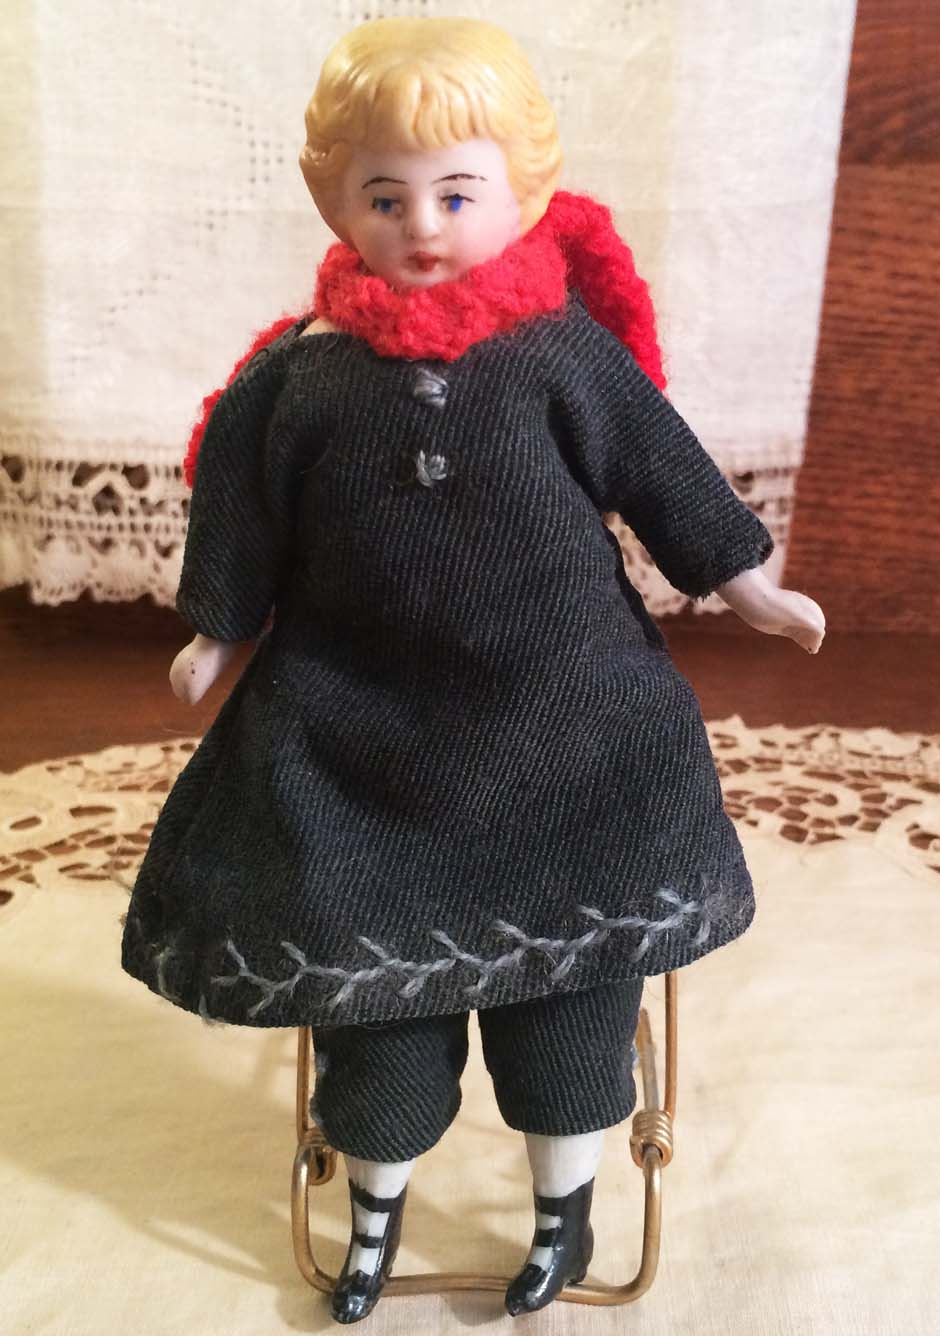 Adorable Small Antique Bisque Head Doll with Molded Hair in Lovely Original Winter Clothing, ca. 1900